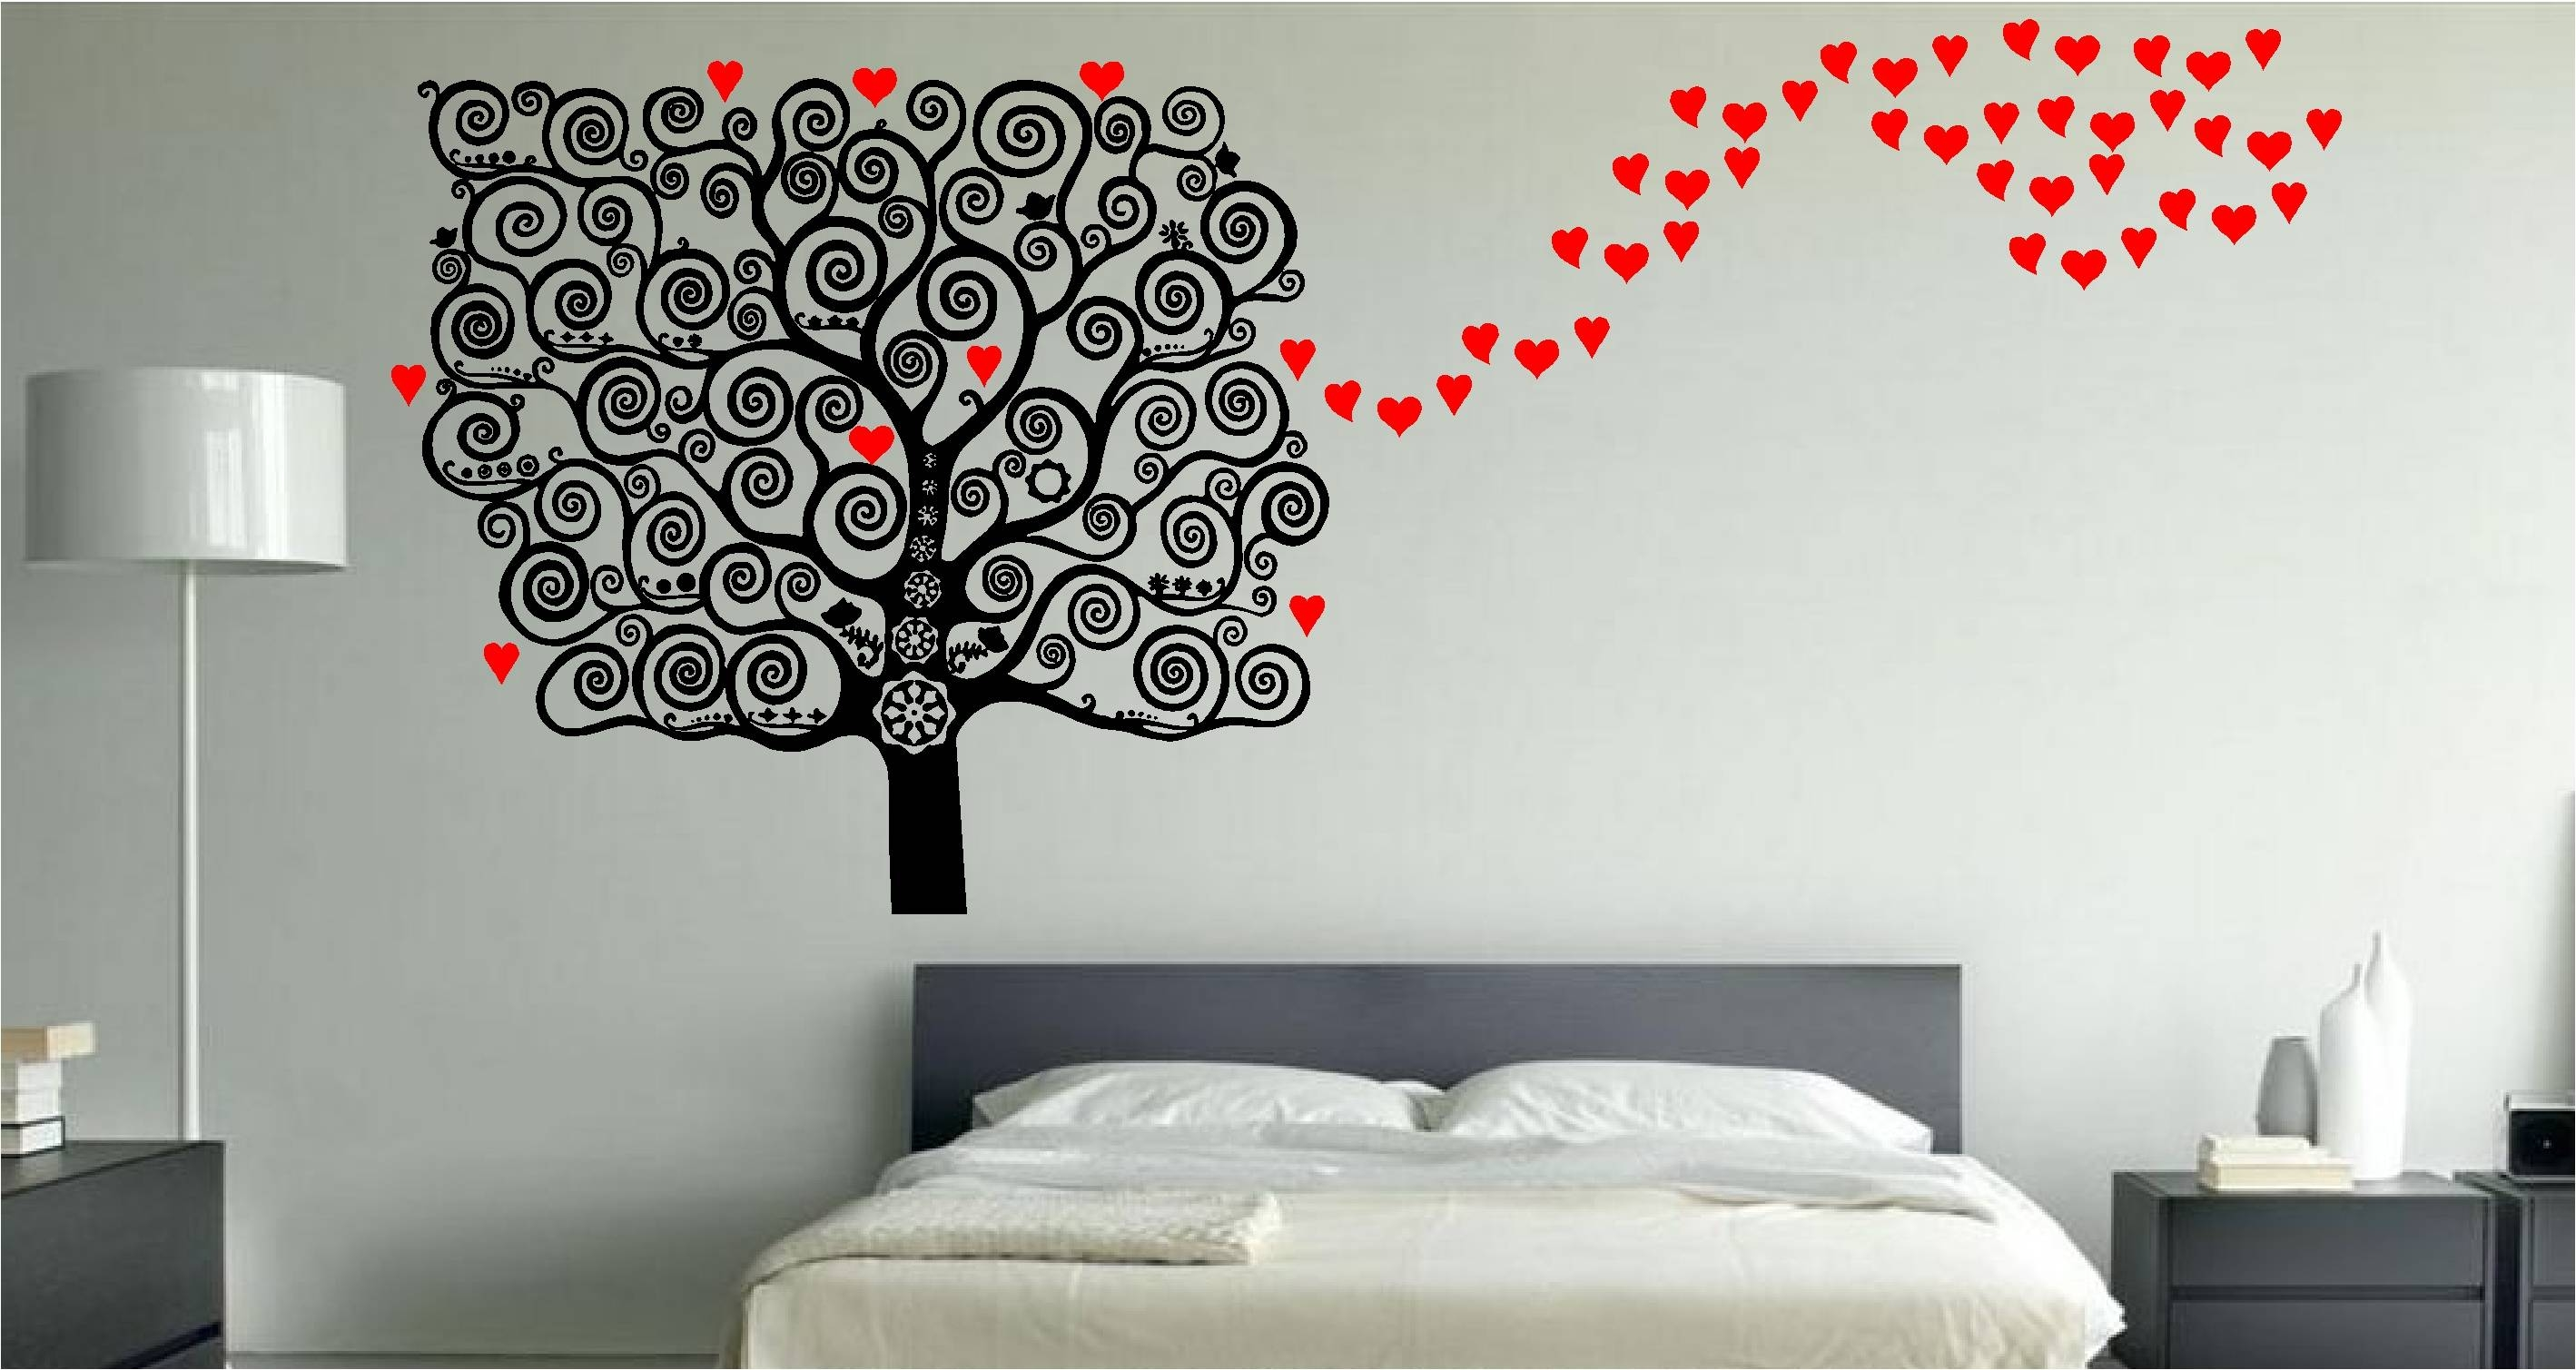 Bedroom Decor : 3d Wall Stickers Wall Decals Childrens Wall Murals For Newest Decorative 3d Wall Art Stickers (View 15 of 20)